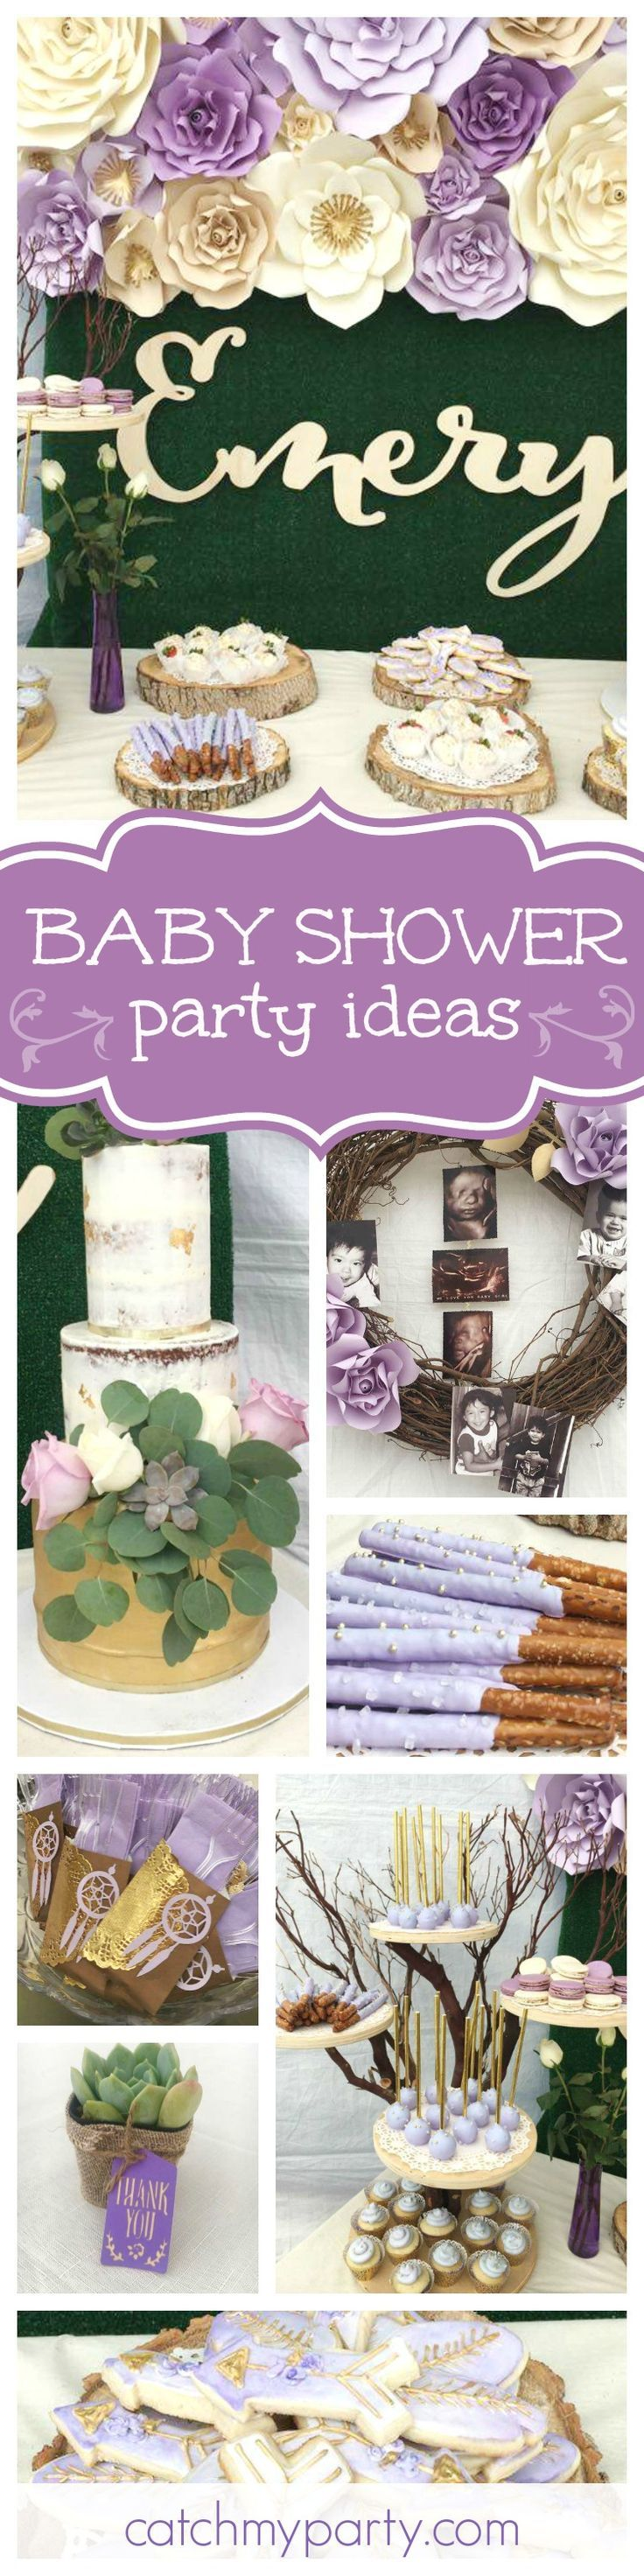 163 best baby shower ts & decoration images on Pinterest